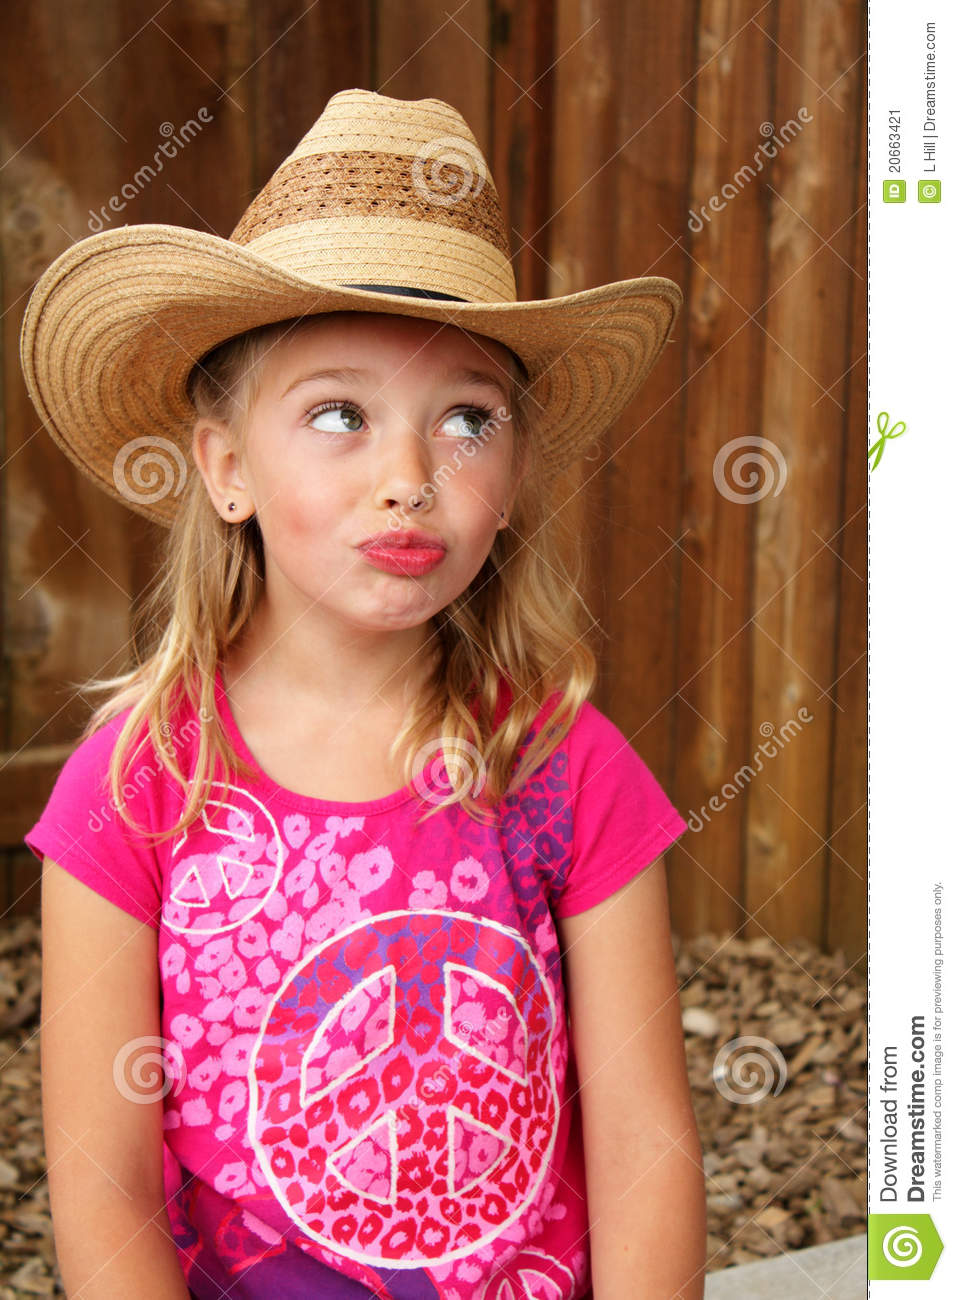 0730fa4c8 Silly Cowgirl In A Straw Hat. Stock Image - Image of cute, female ...